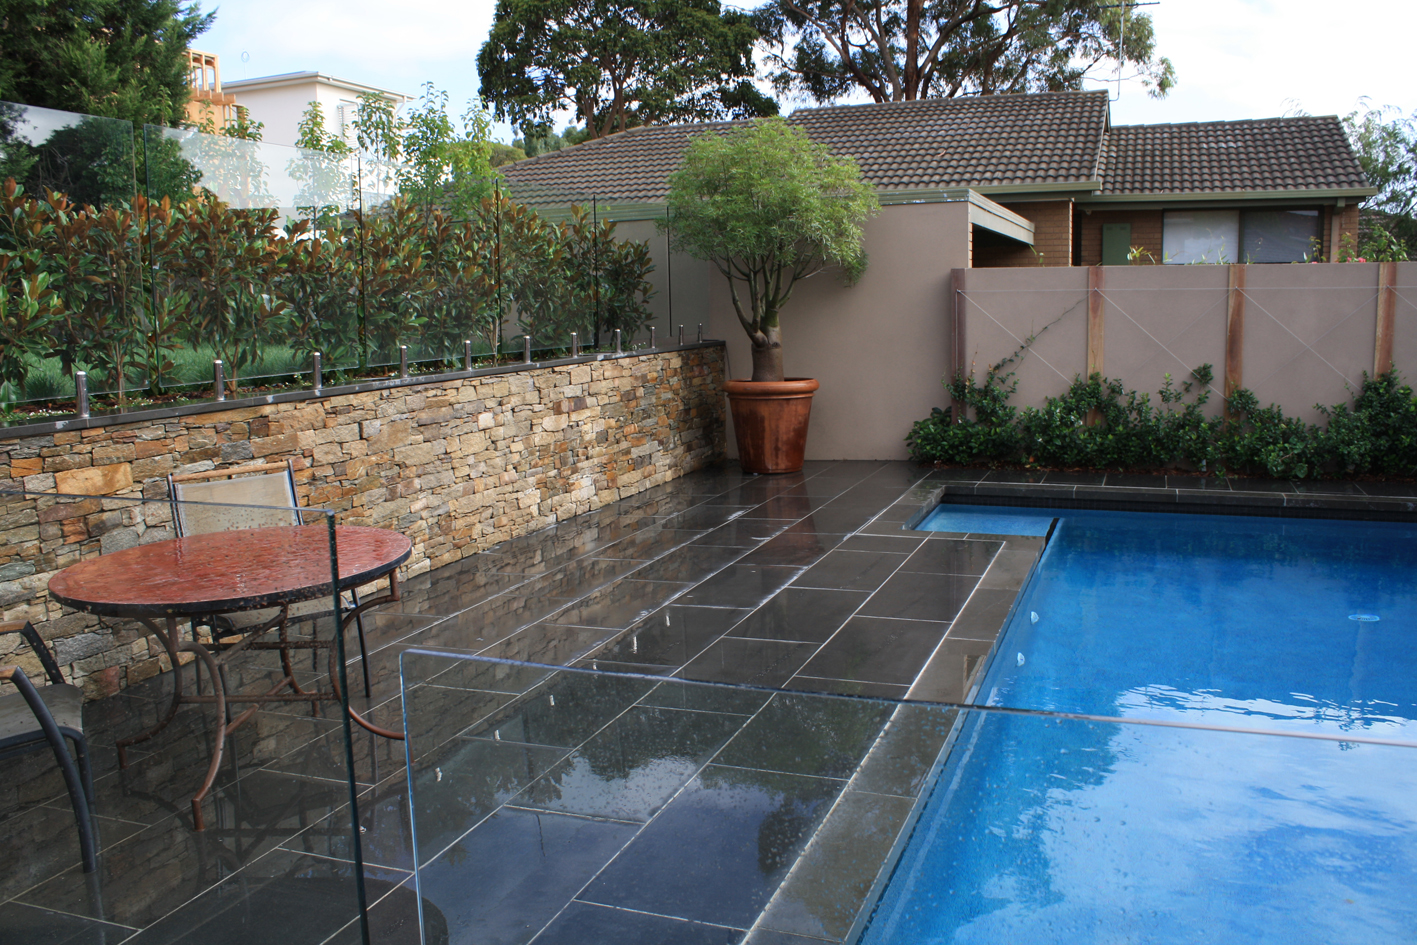 Outdoor Pavers New Zealand : Natural paving indian sandstone cobblestones bluestone more